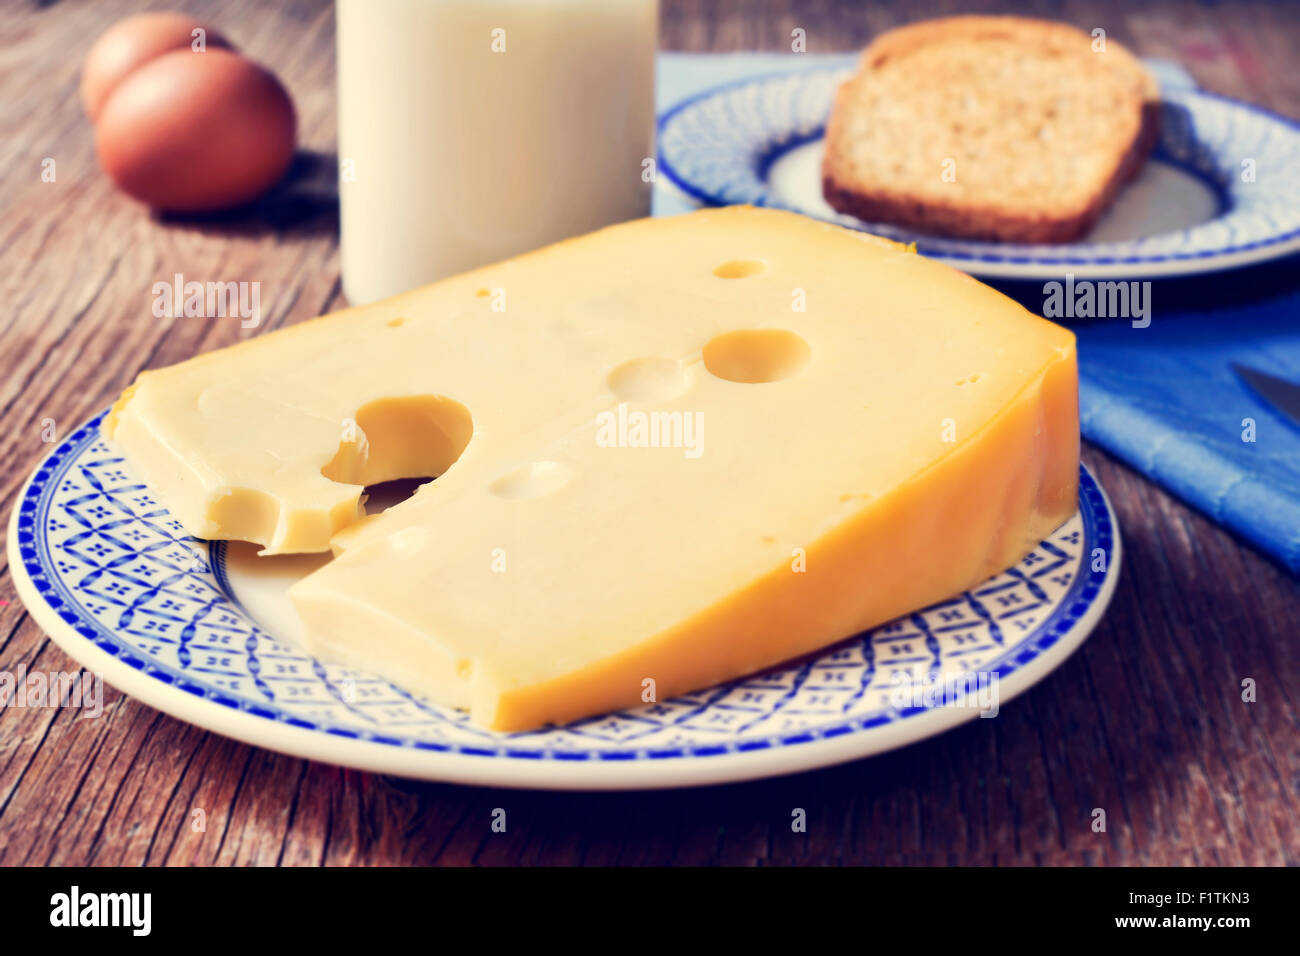 closeup of a piece of Swiss cheese in a plate, a bottle with milk, some brown eggs and a plate with some toasts - Stock Image